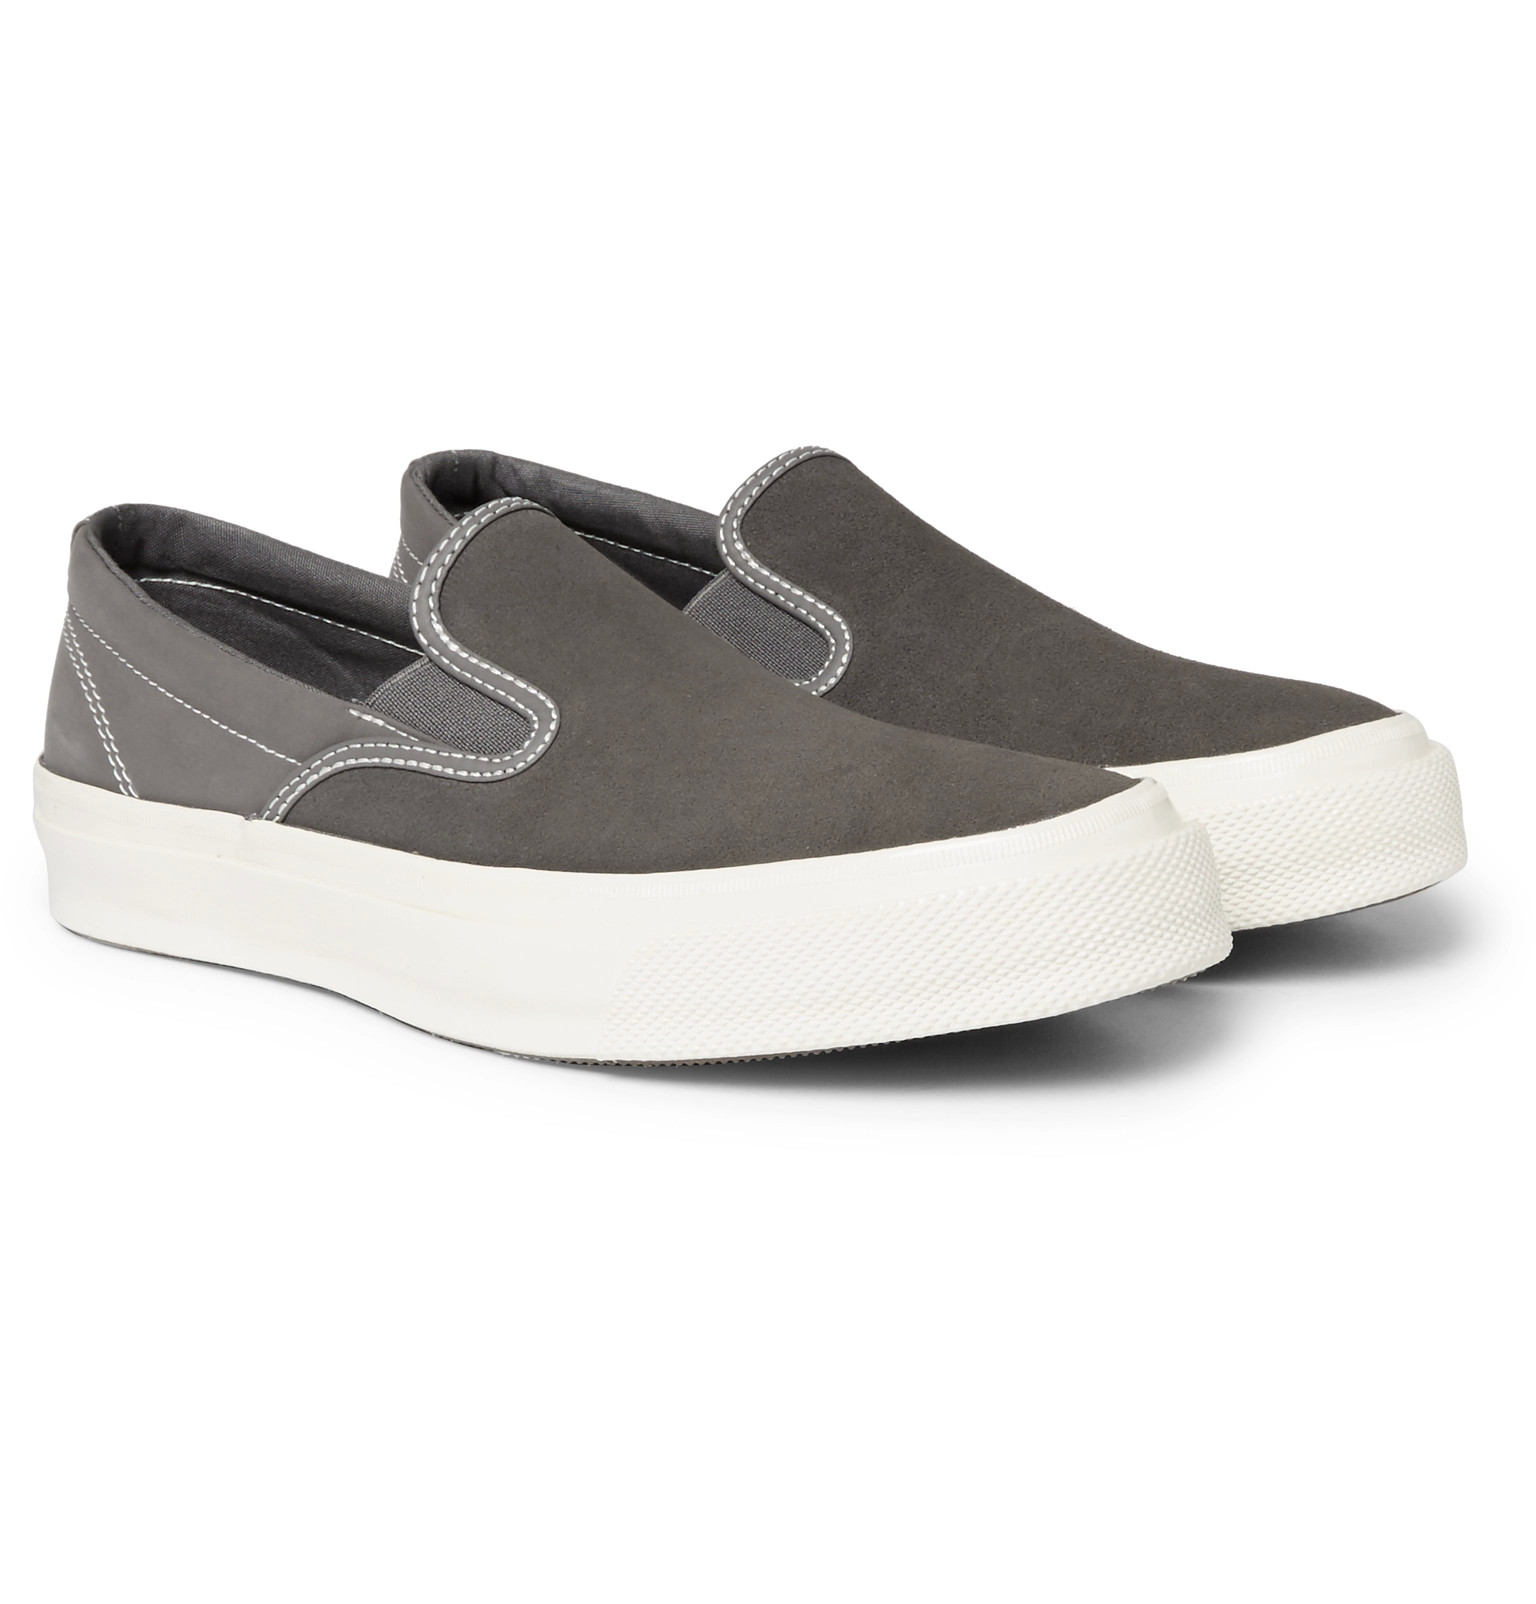 Very Goods | Converse Deck Star 67 Suede and Canvas Slip